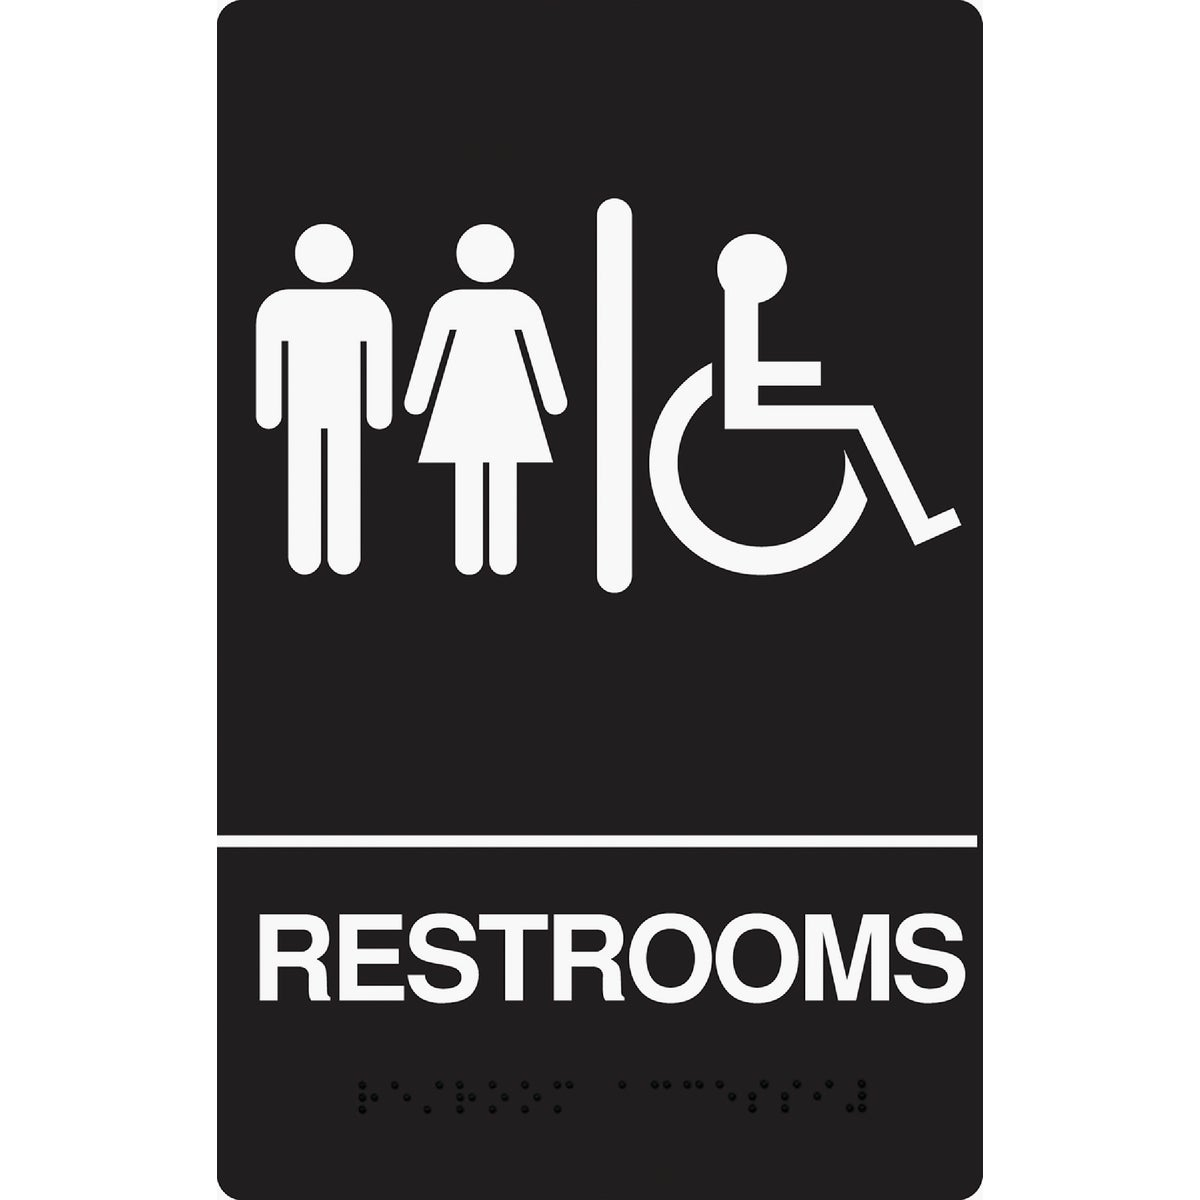 6X9 BRAILLE RESTROM SIGN - DB-5 by Hy Ko Prods Co